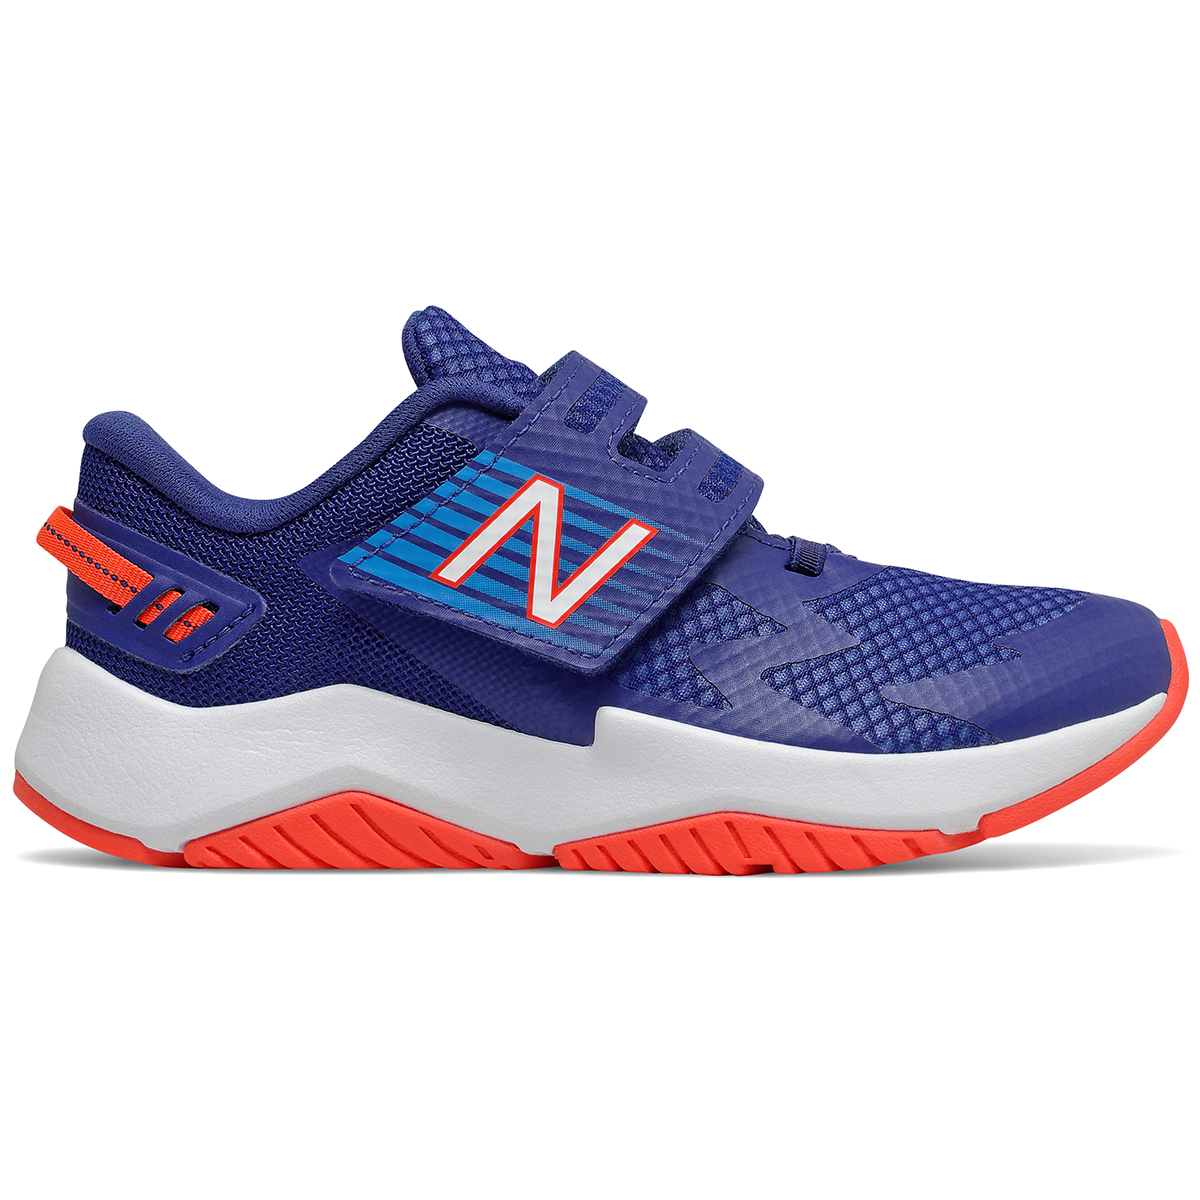 New Balance Little Boys' Rave Run Sneakers - Blue, 11